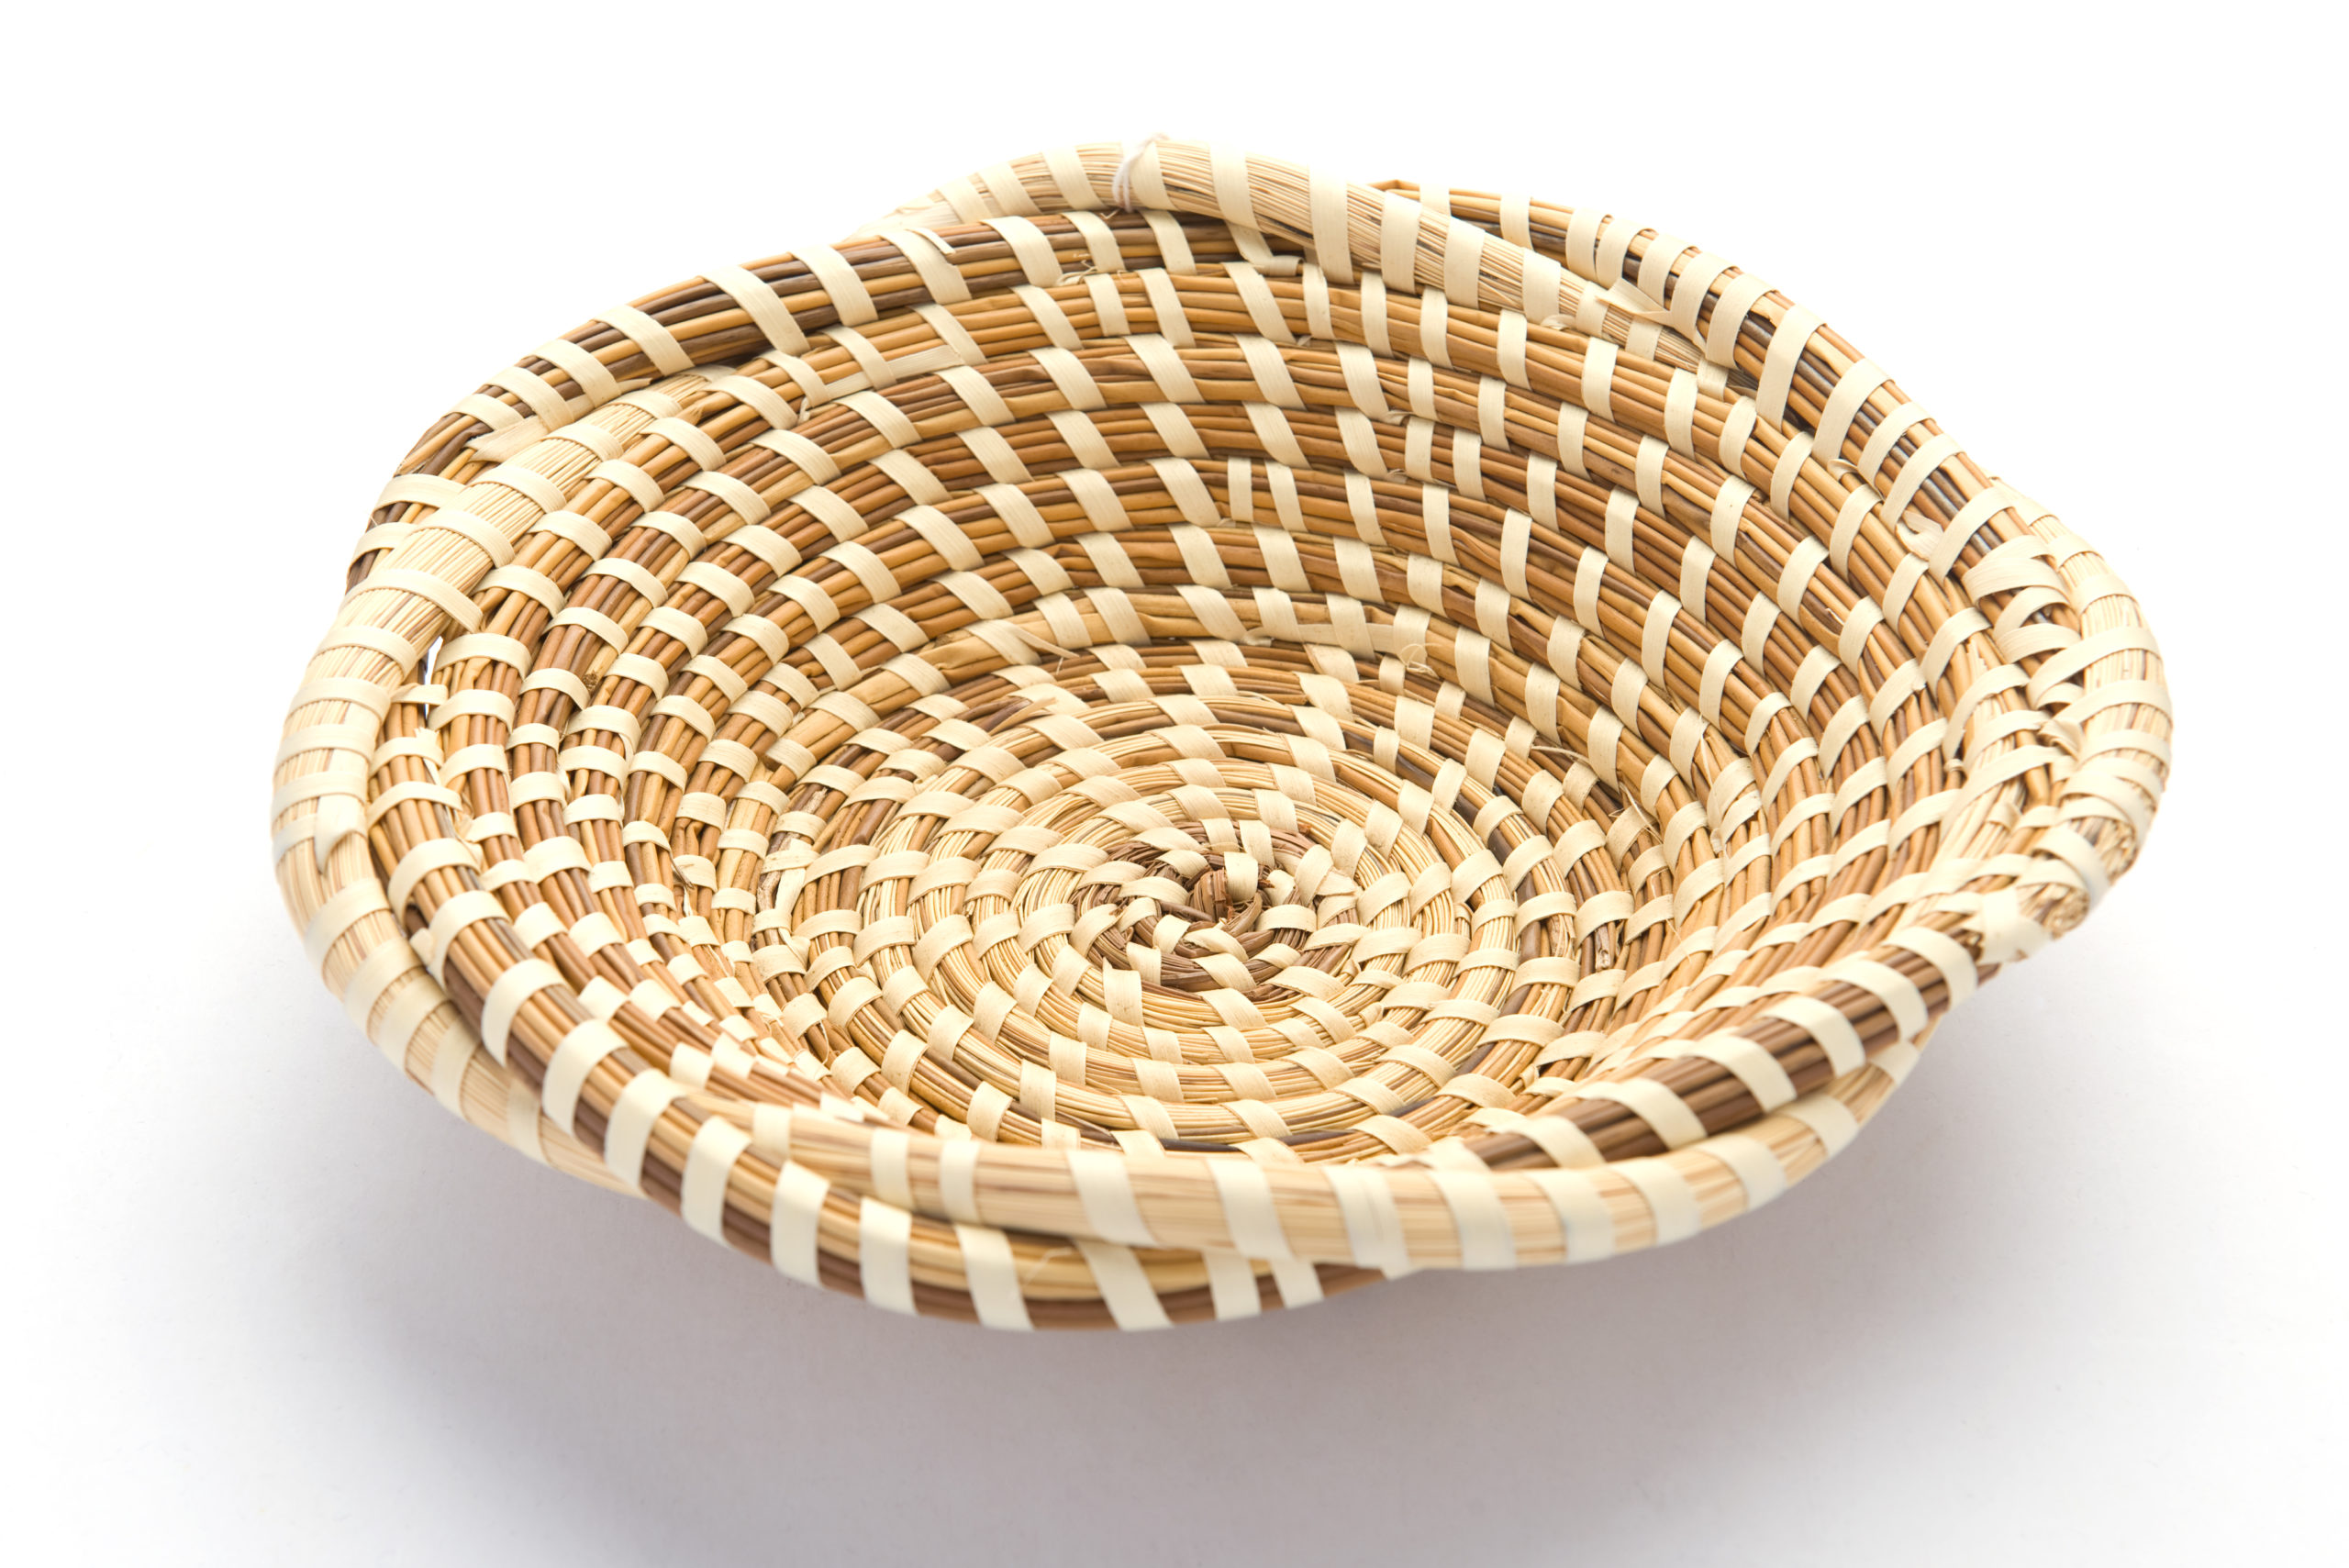 Sweetgrass Basket Weaving Workshop